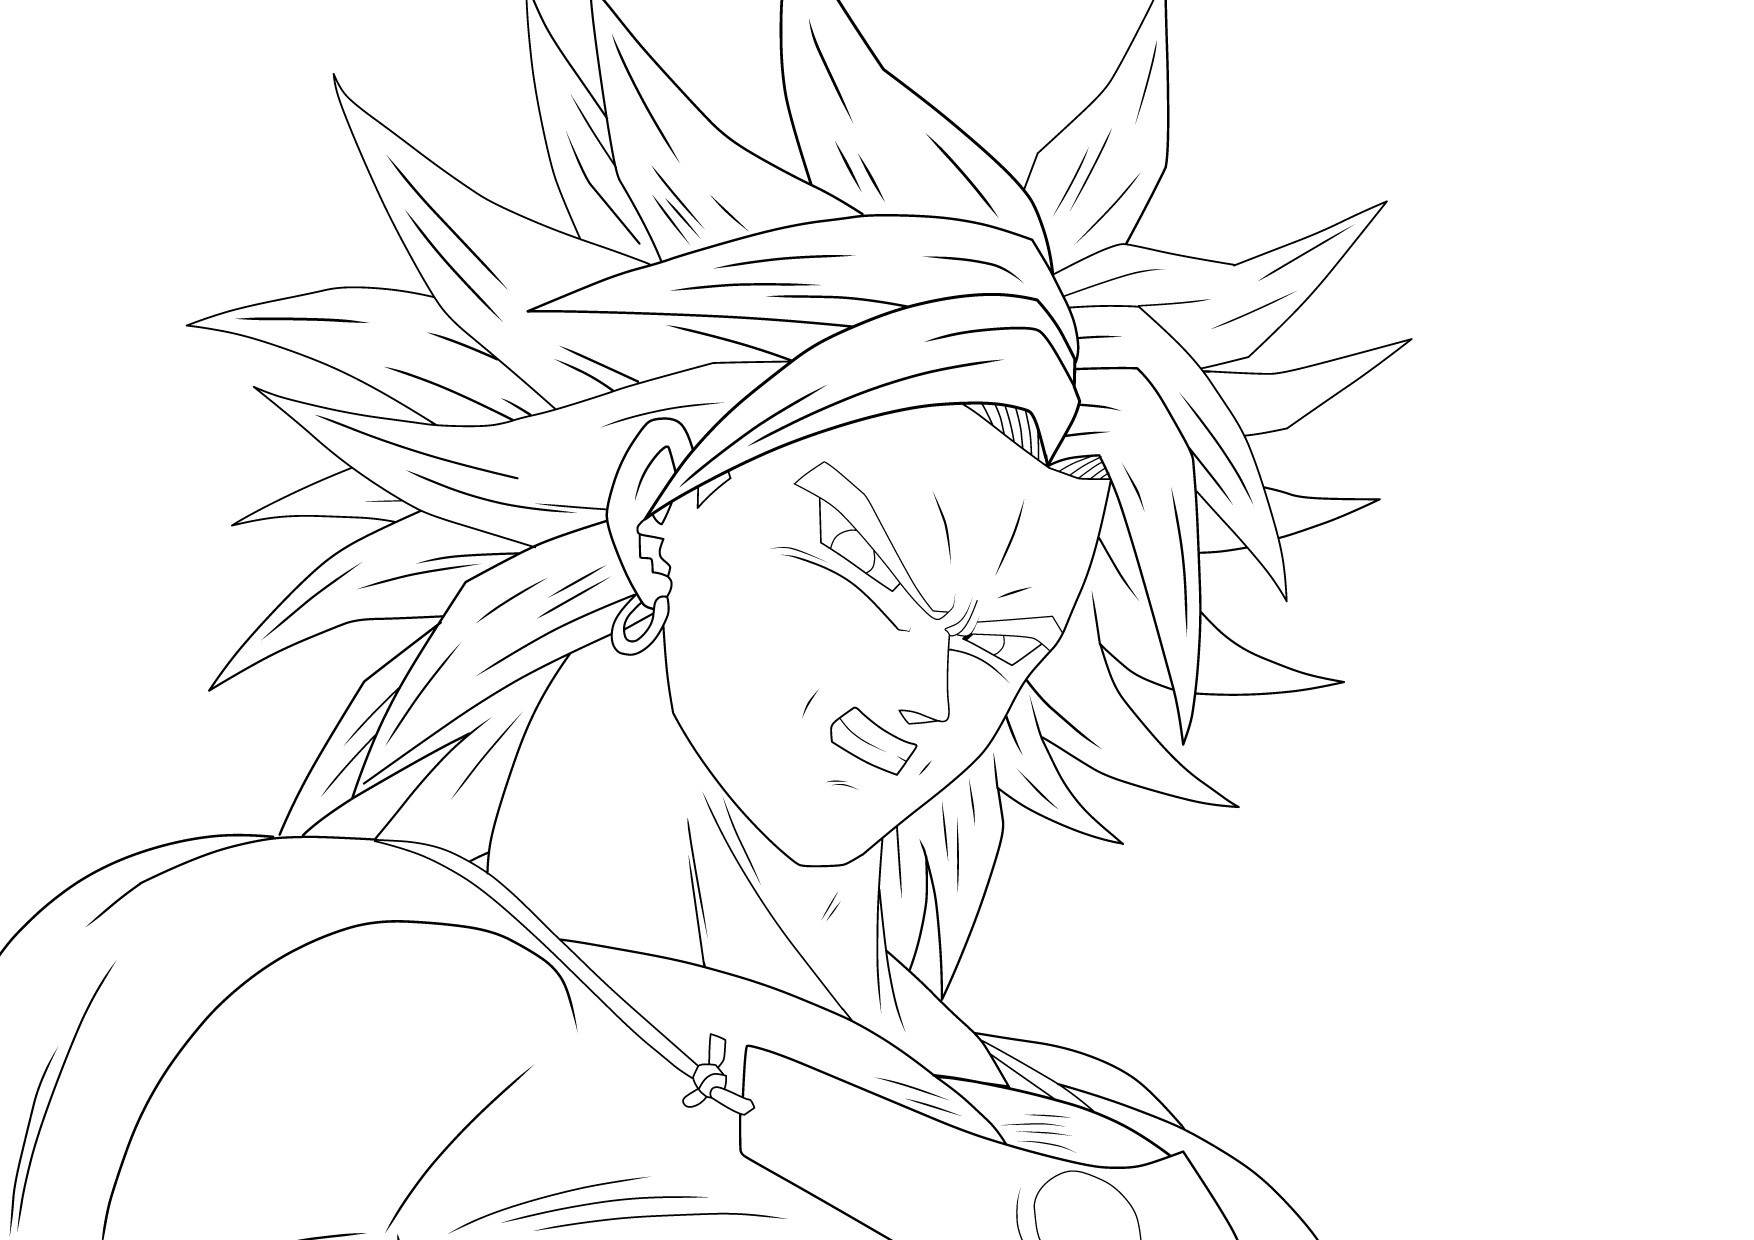 ssj broly line art by artworx88 on deviantart